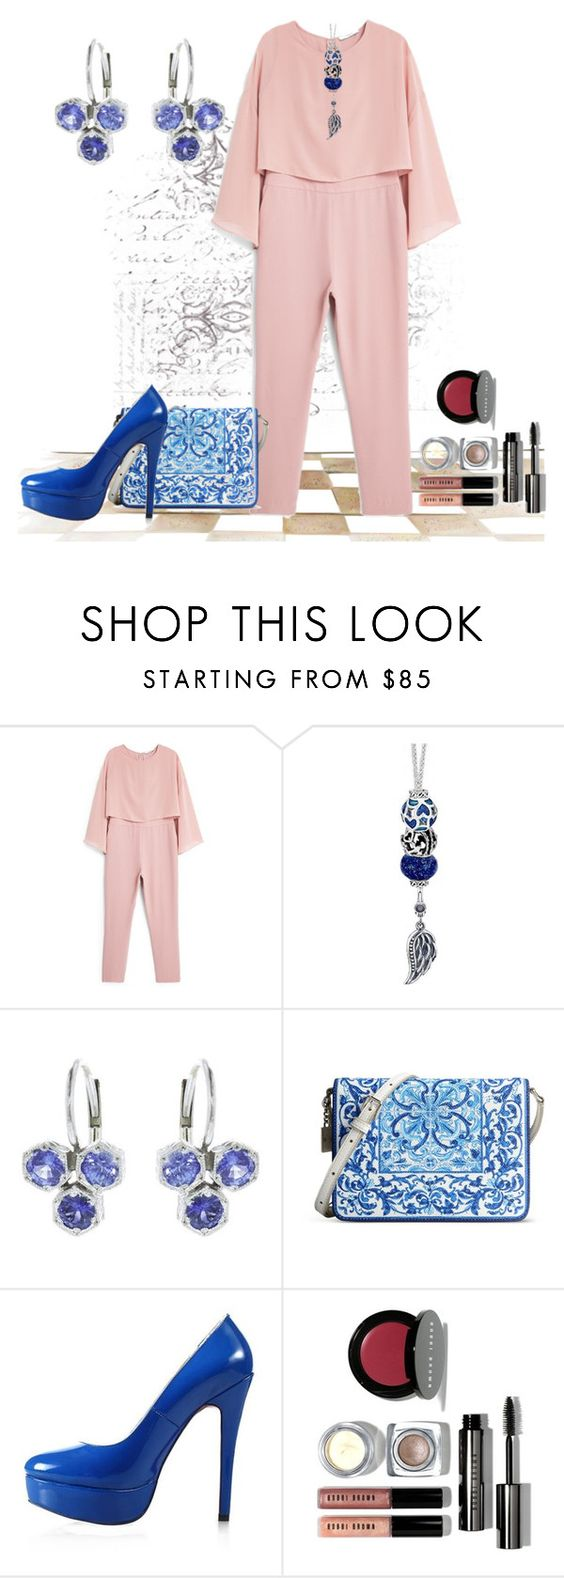 """""""Untitled #2539"""" by empathetic ❤ liked on Polyvore featuring MANGO, Cathy Waterman, Dolce&Gabbana, Posh Girl and Bobbi Brown Cosmetics"""